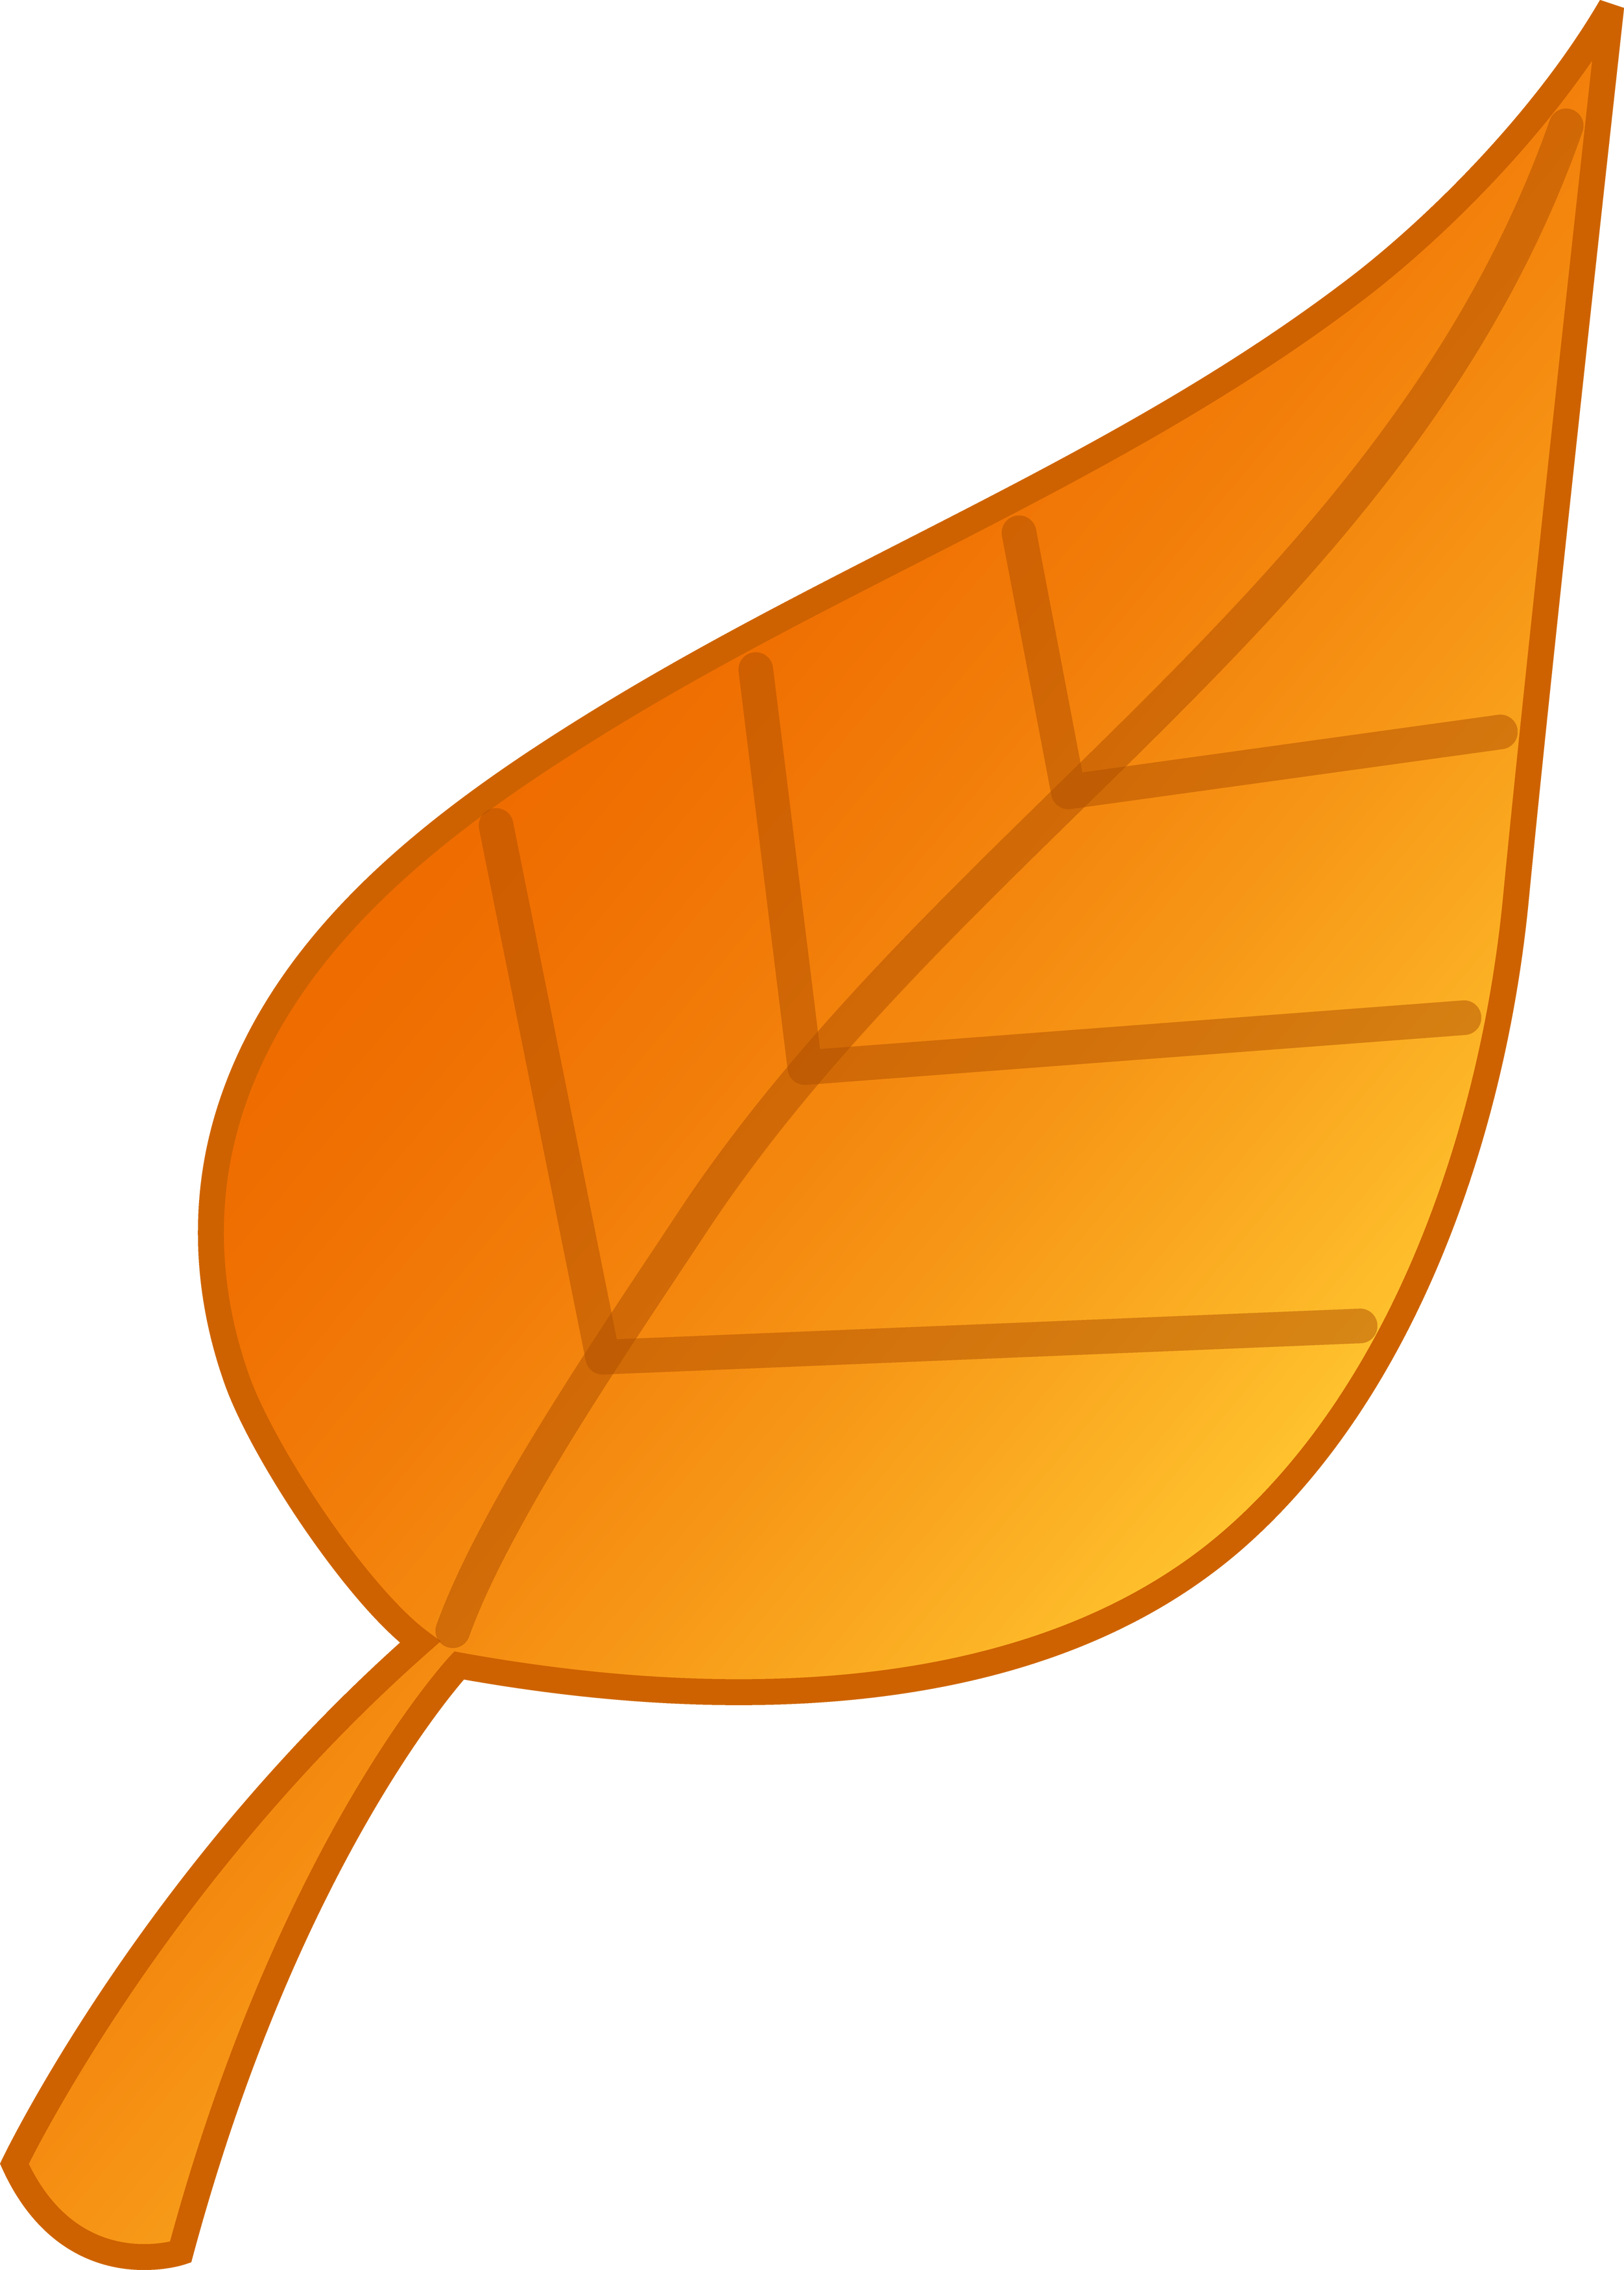 Autumn clipart autumn word. Animated clip art falling